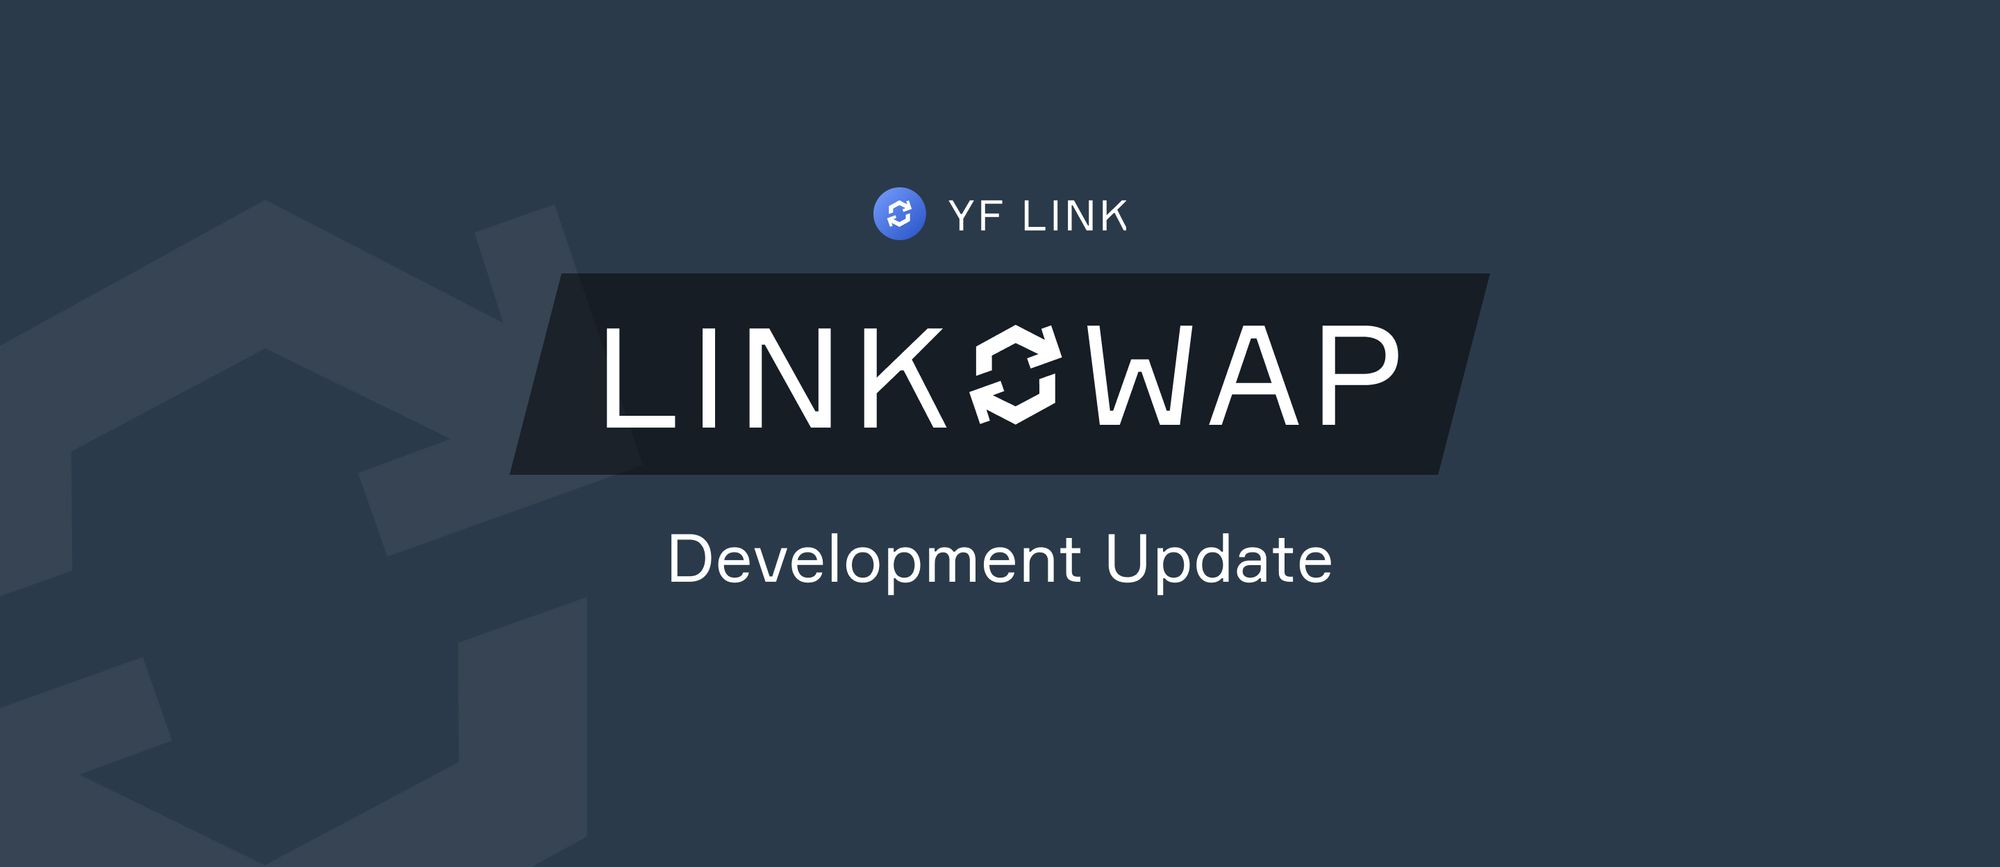 LINKSWAP - Development Update 2